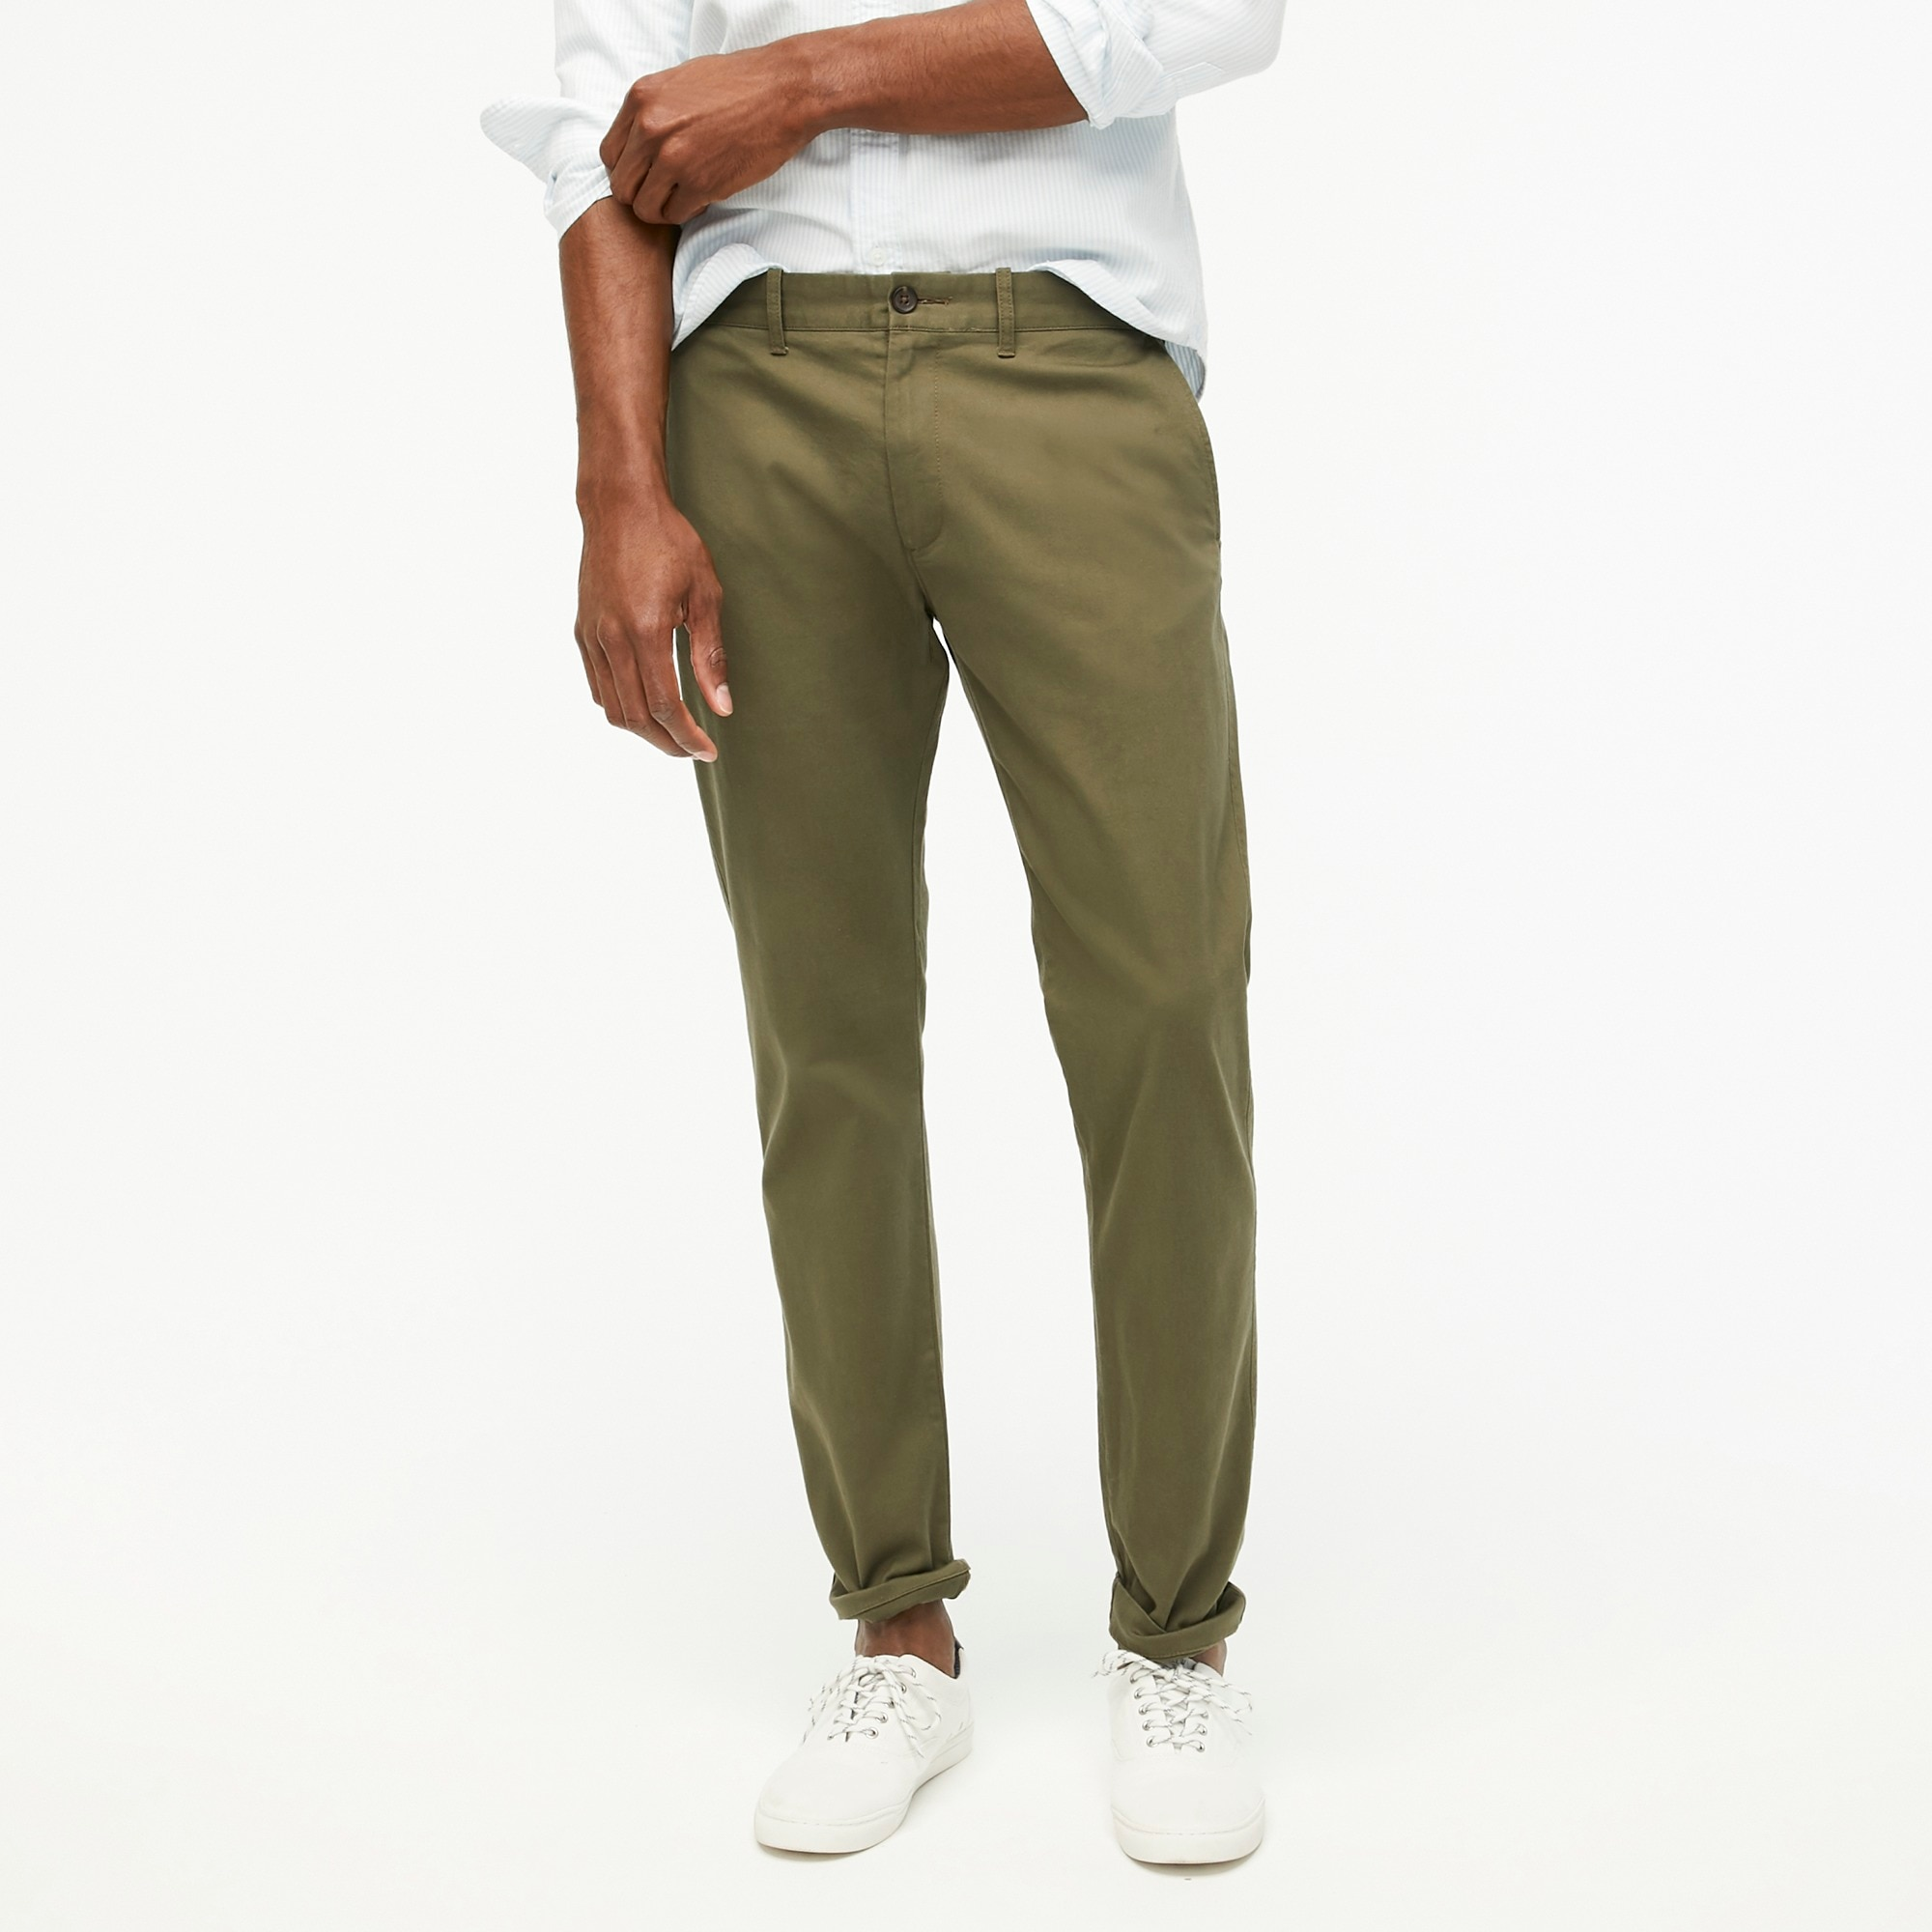 Driggs slim-fit flex chino factorymen flex collection c